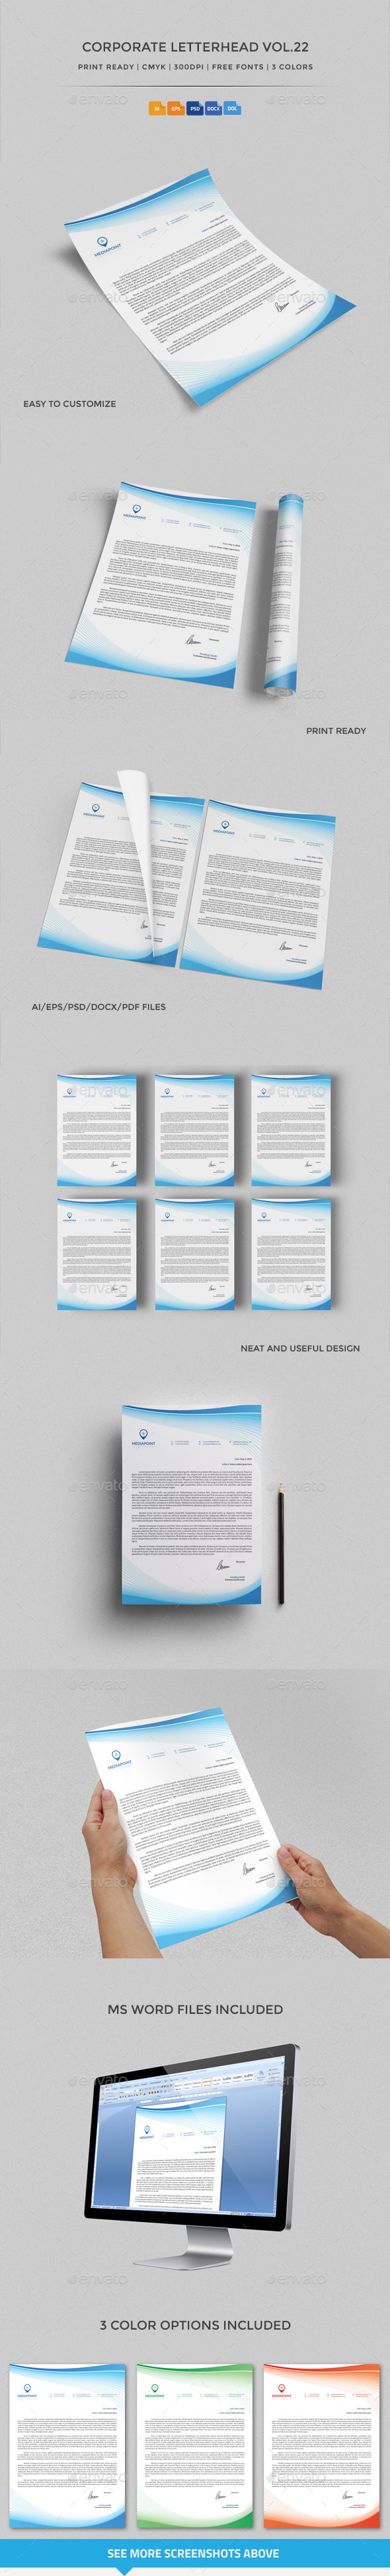 Corporate Letterhead vol.22 with MS Word DOC/DOCX - Stationery Print Templates